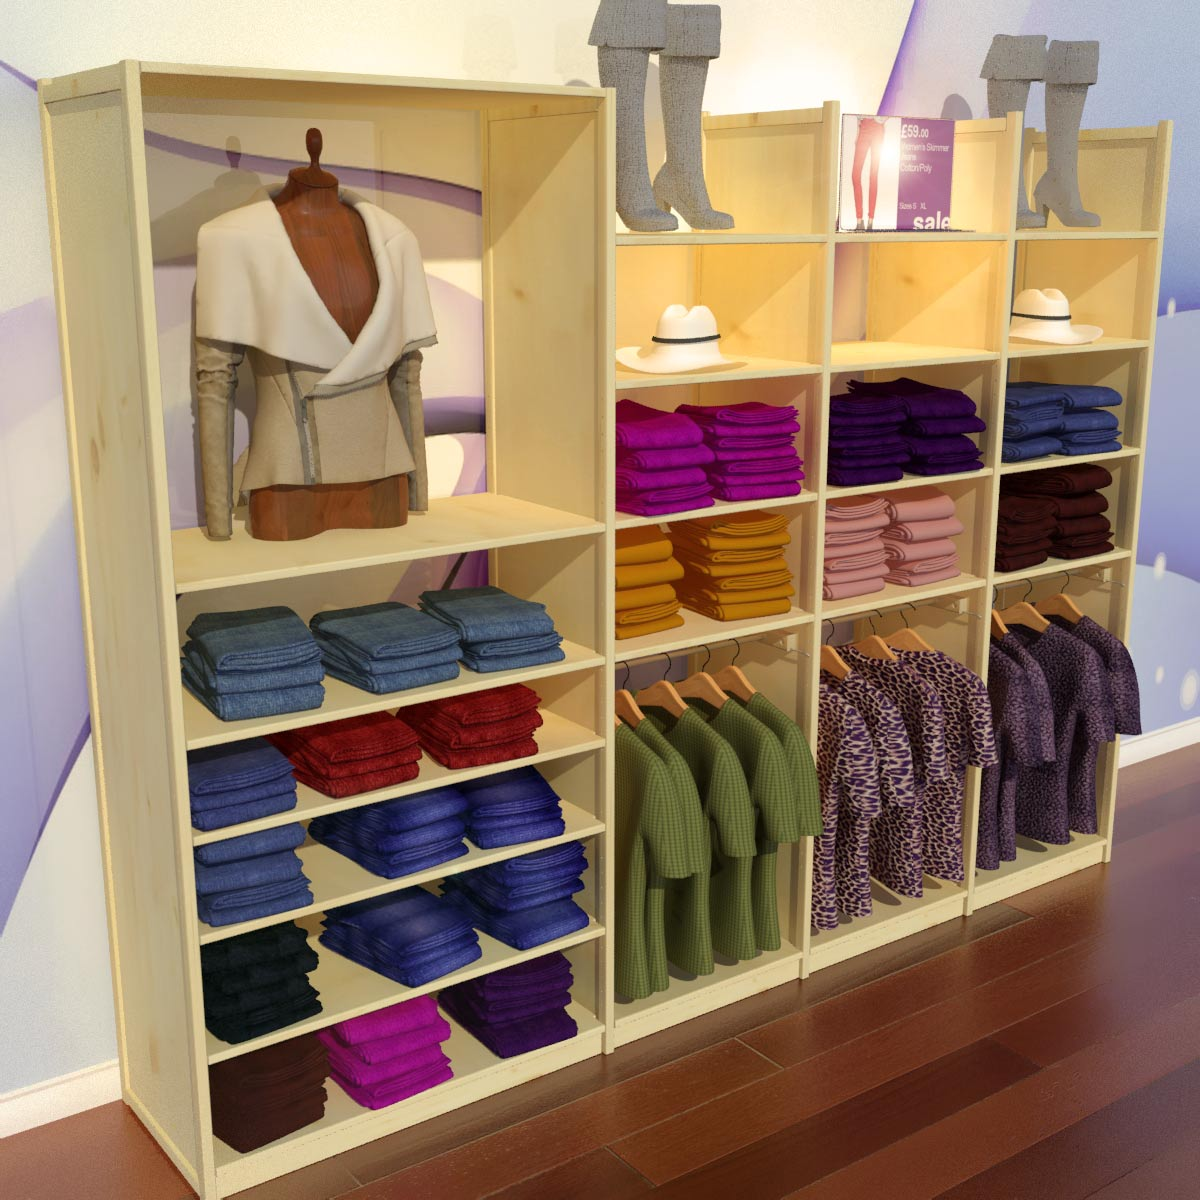 16 3D Garment Shop Design Images - Retail Store 3D Design Software ...